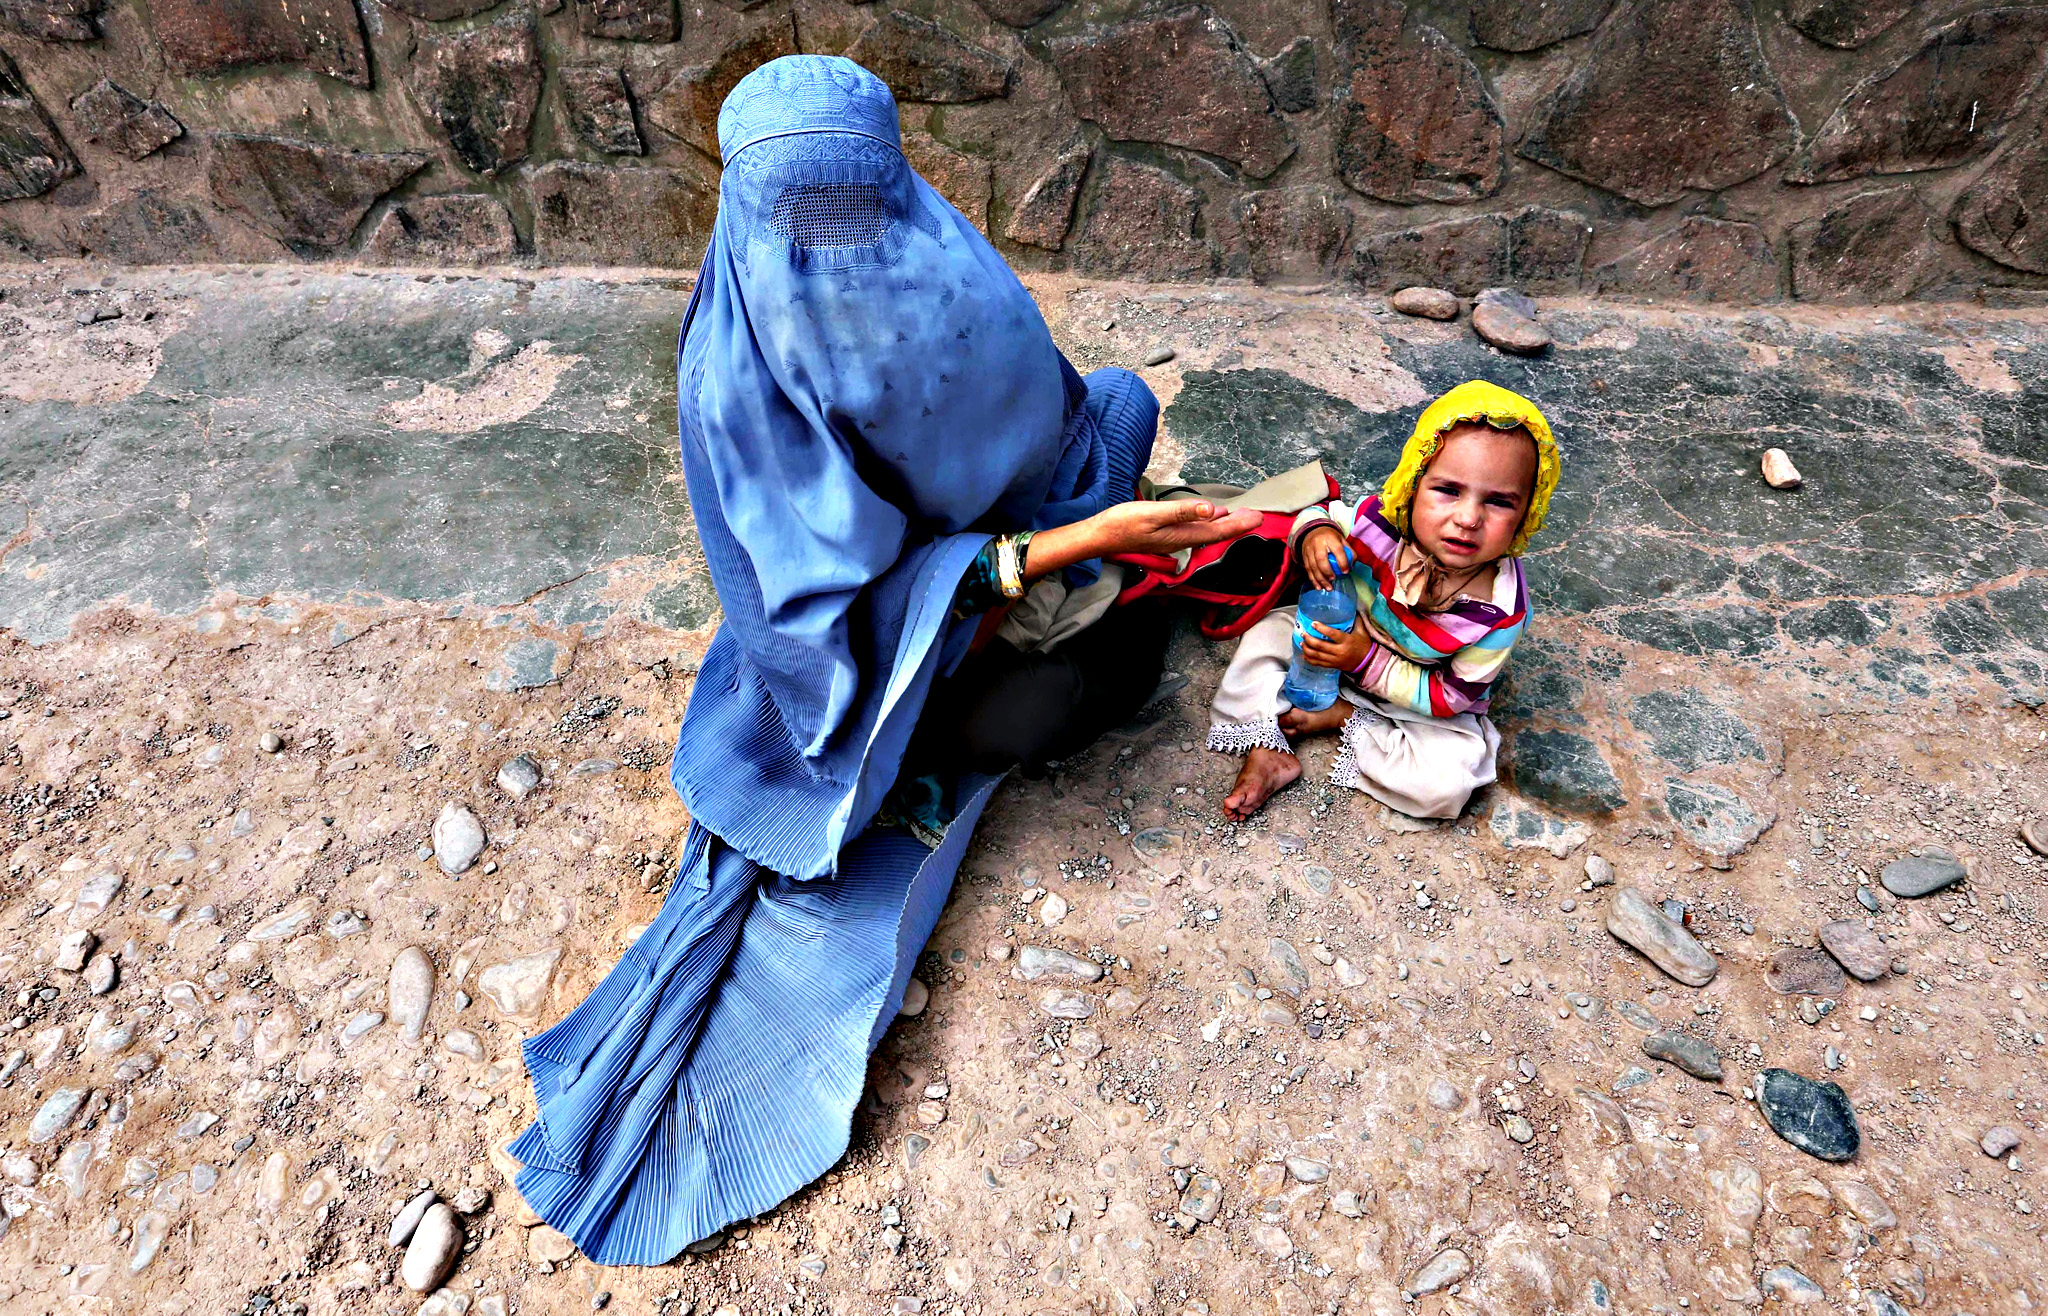 An Afghan woman waits to get medical treatment at the refugee camp in Herat, Afghanistan on Monday. The camp provides refugees with basic medical treatment, education, food and hygiene